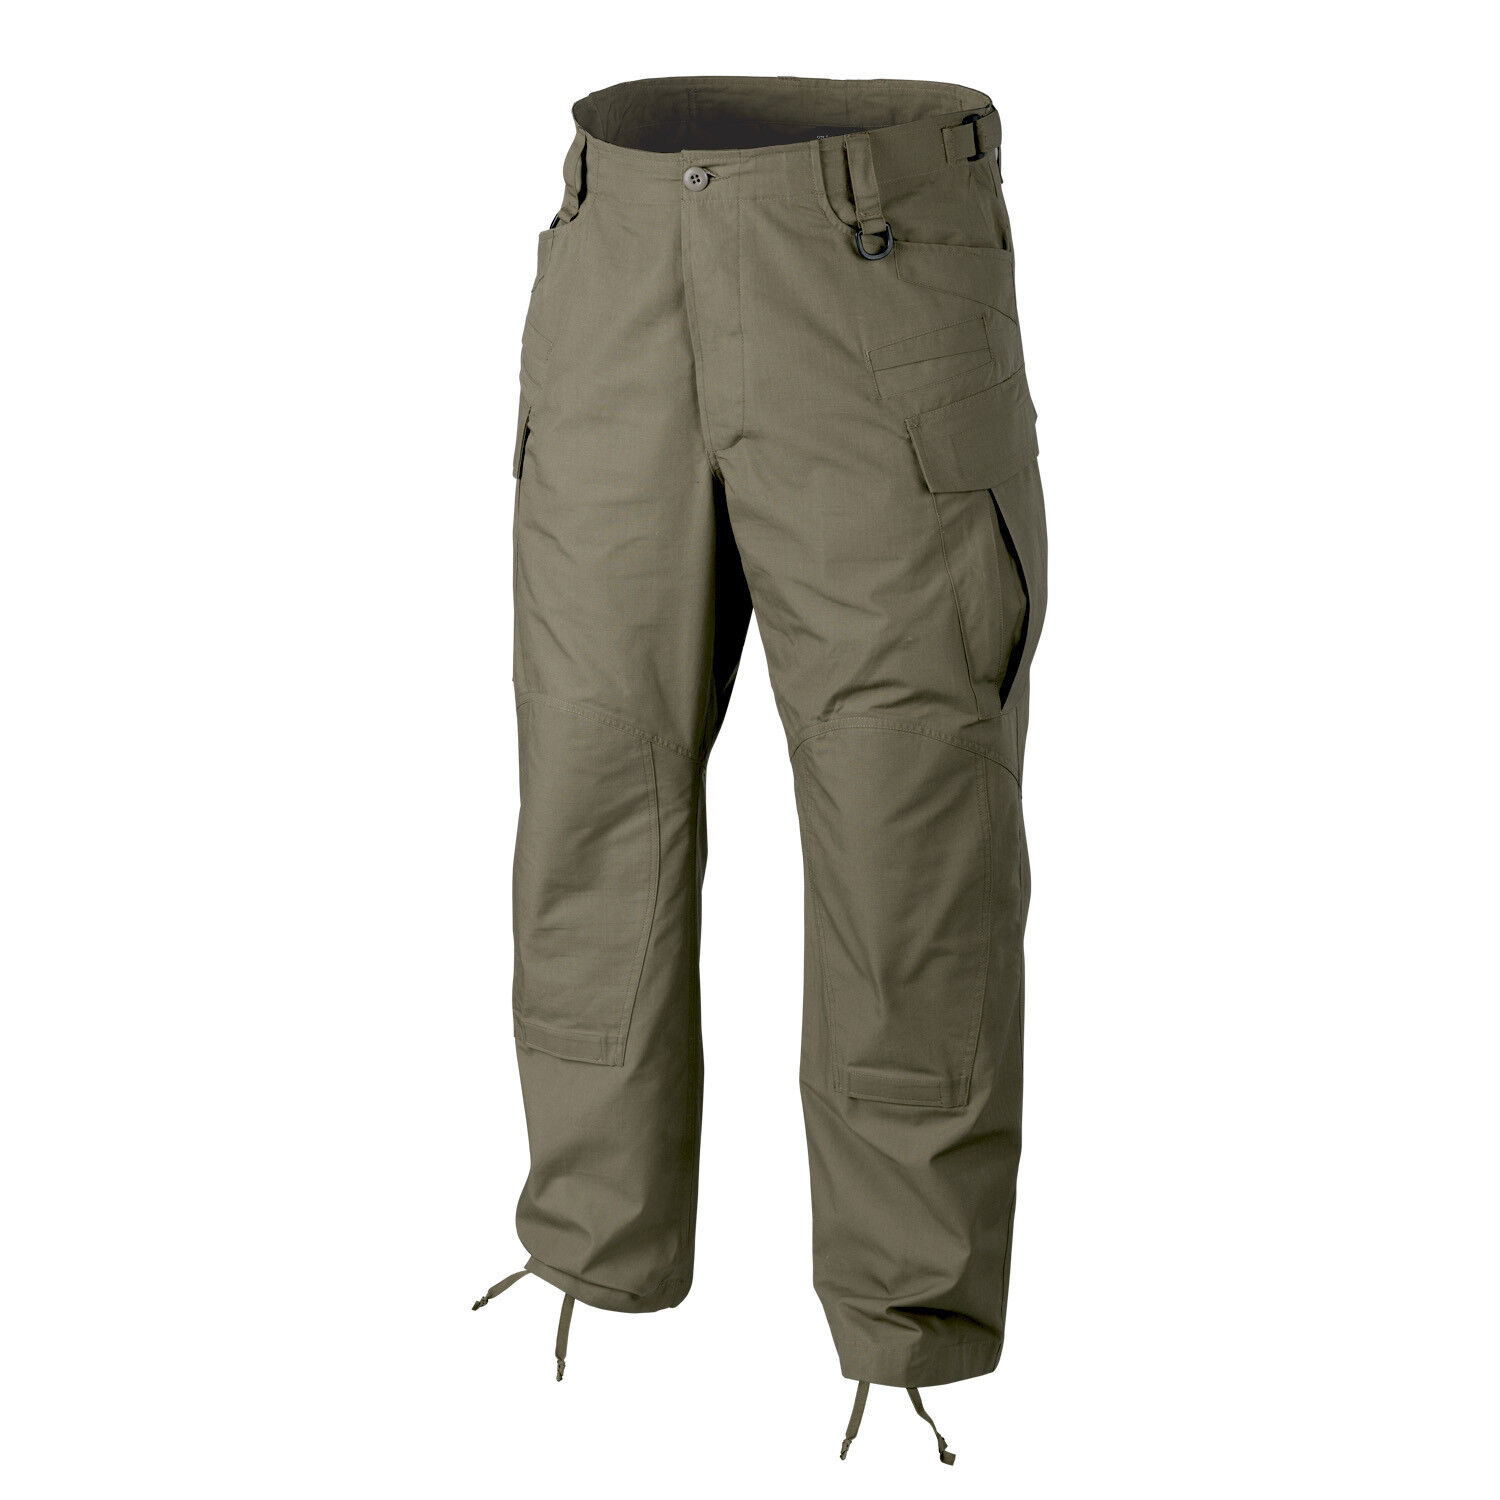 Helikon TEX sfunext Tactical Outdoor Campeggio Bushcraft verde Pantaloni Adaptive verde Bushcraft LARGE 0bbf5a